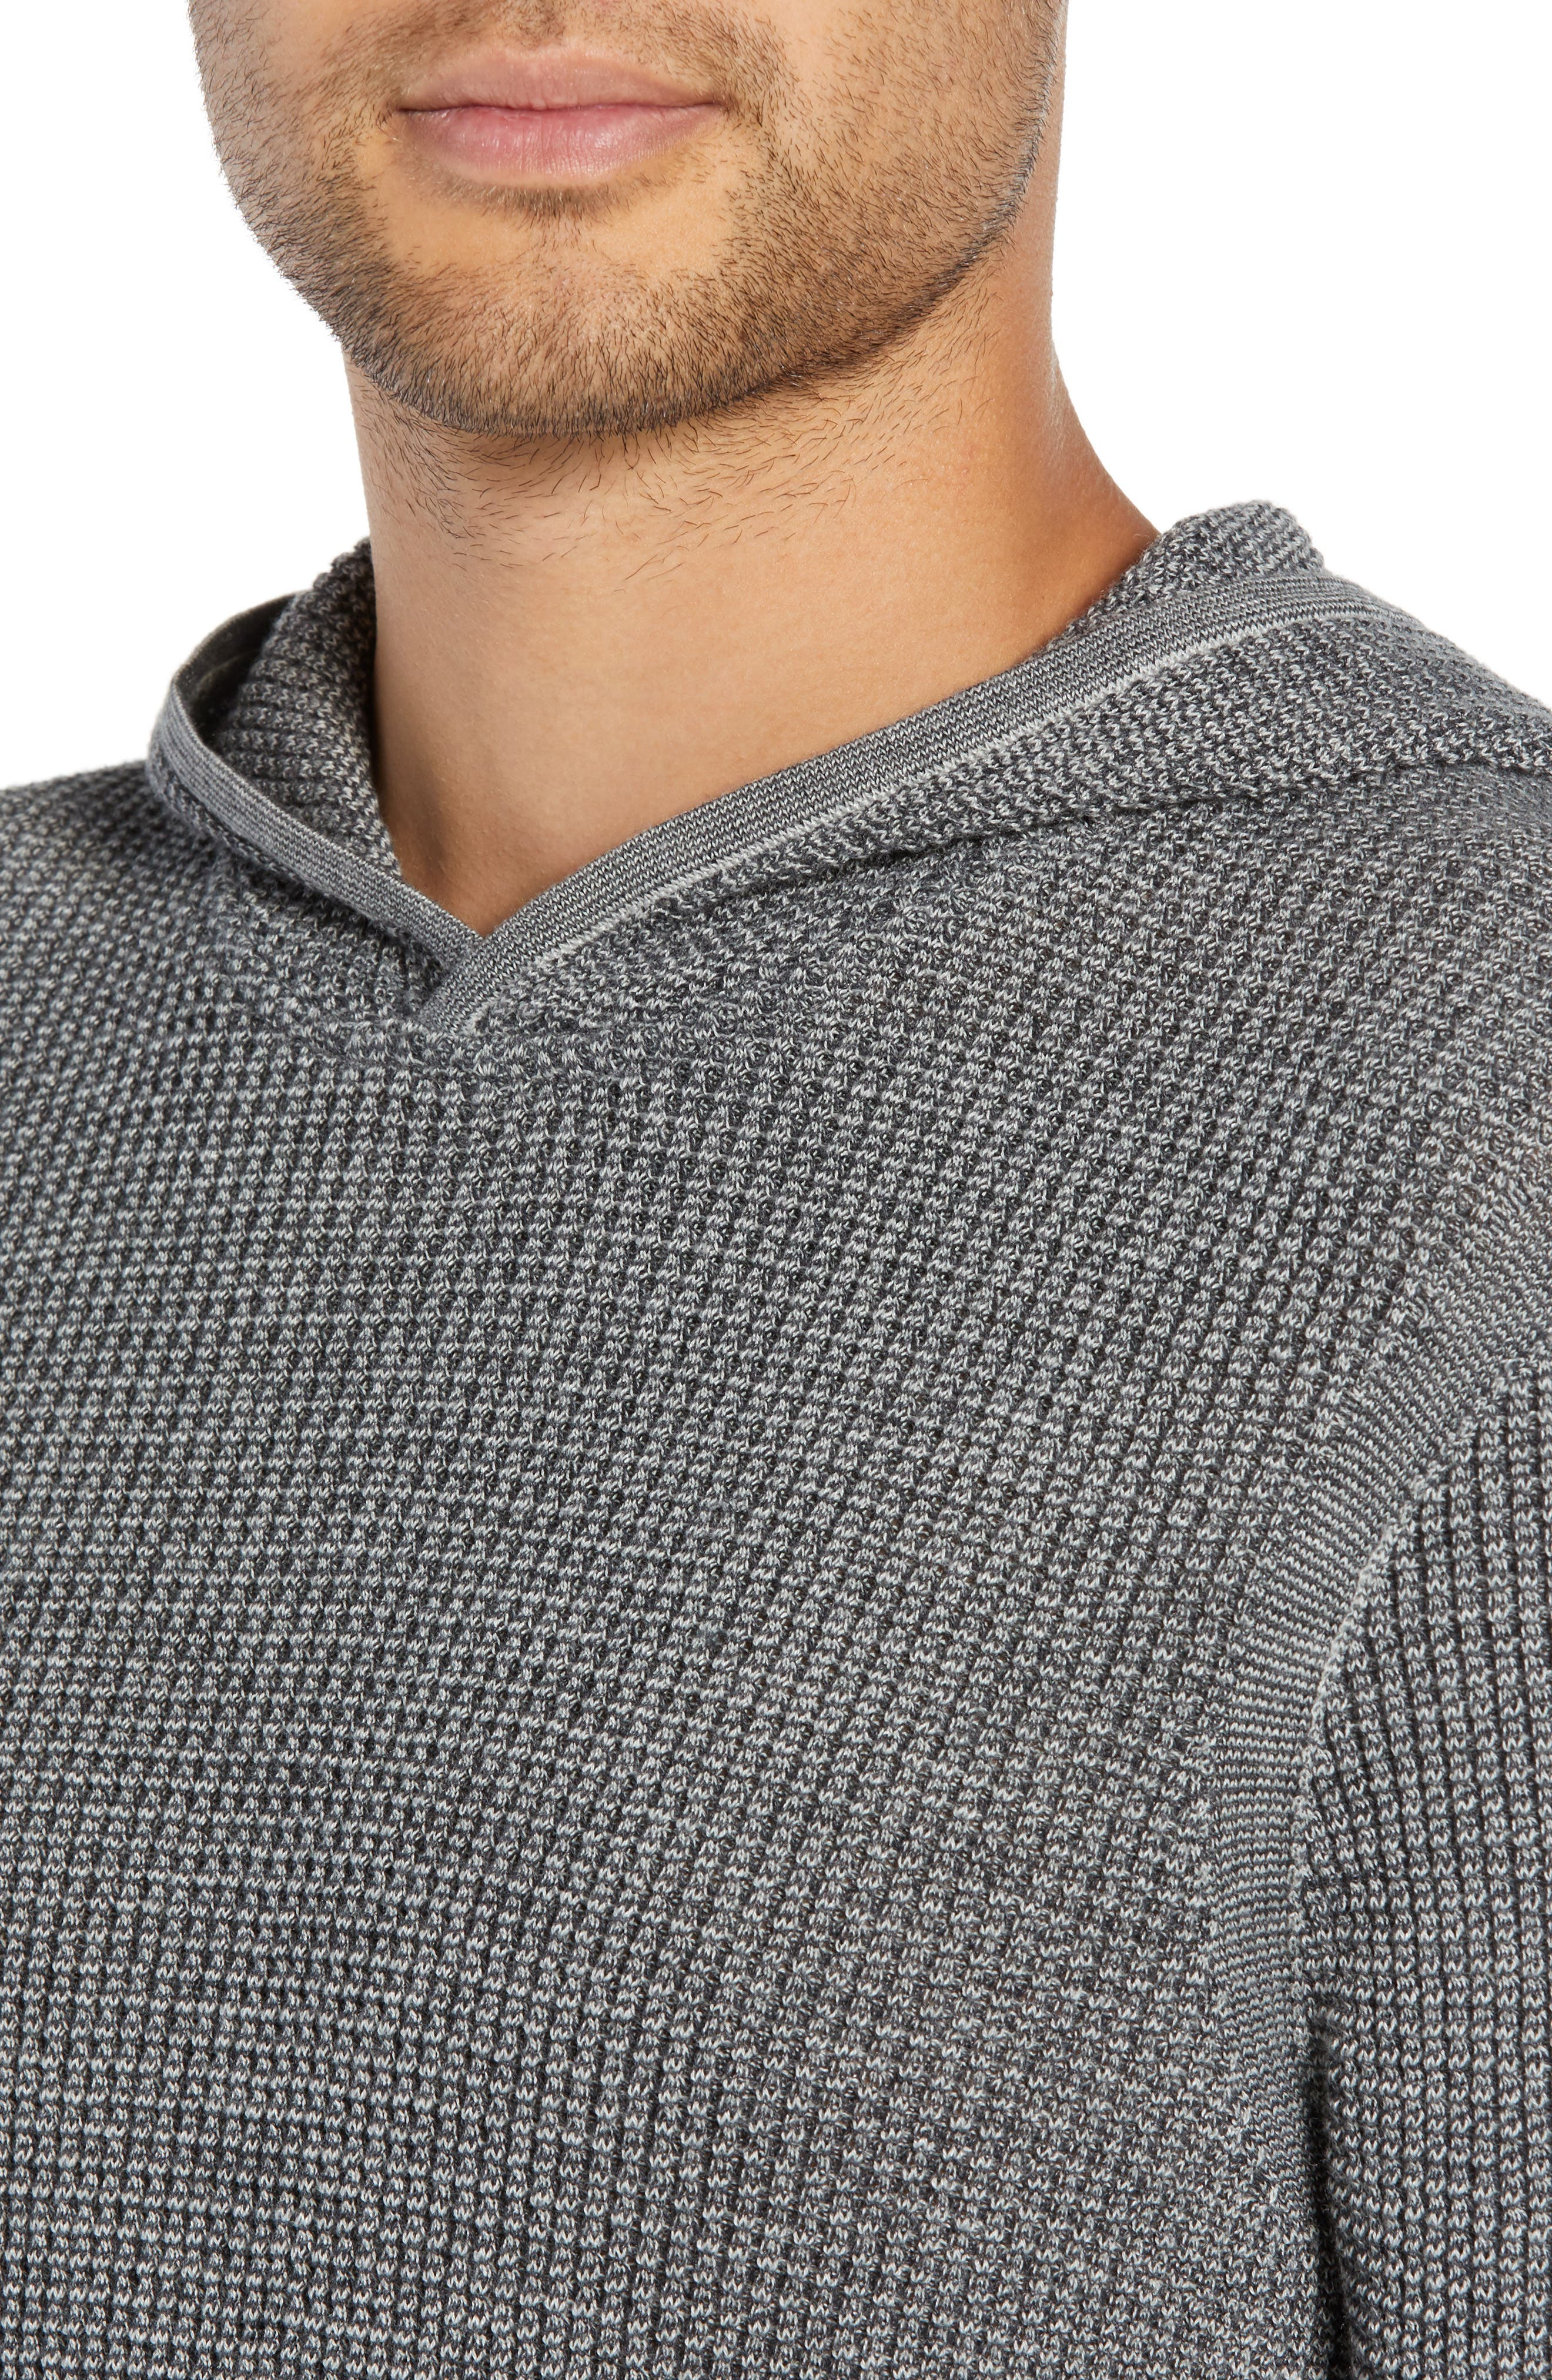 Thermal Hooded Sweater,                             Alternate thumbnail 4, color,                             CHARCOAL HEATHER